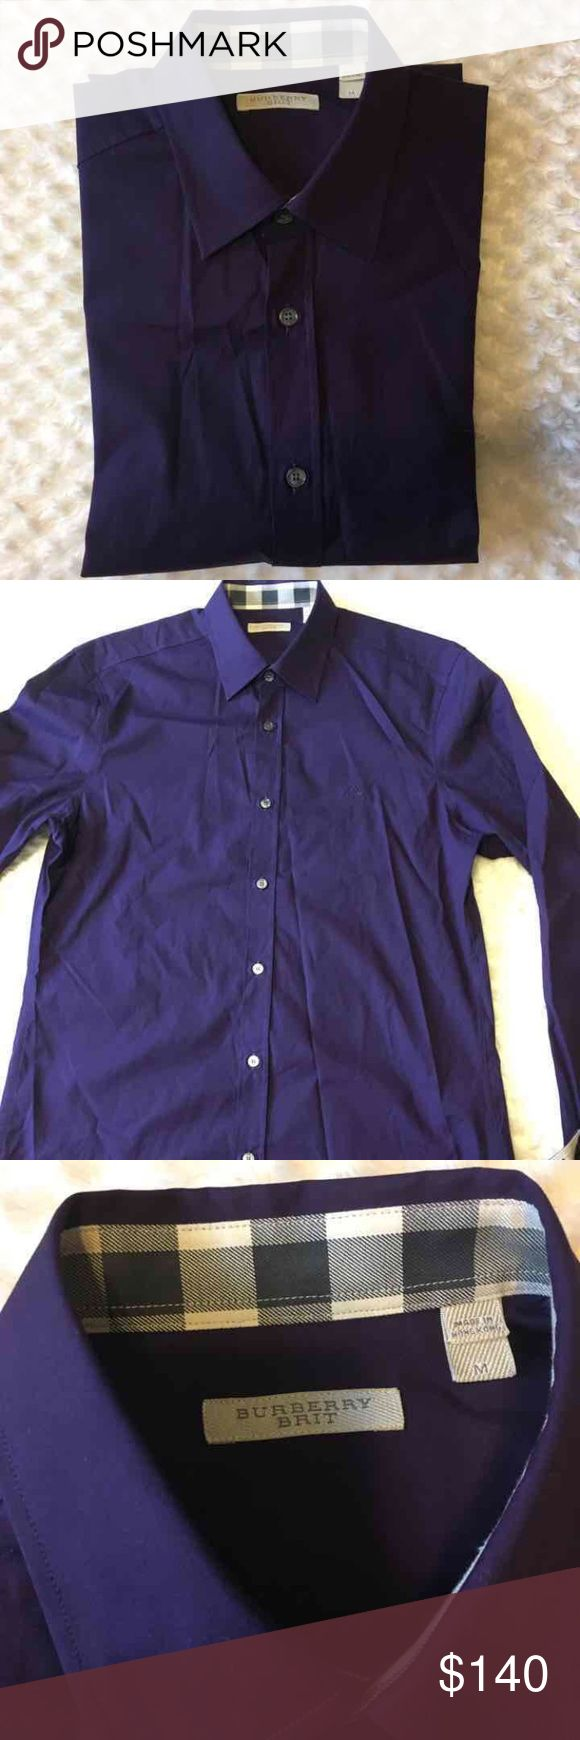 New burberry shirt for men M New without tags never worn authentic burberry shirt size medium 100% cotton purple color original price is 265$on sale Burberry Shirts Casual Button Down Shirts